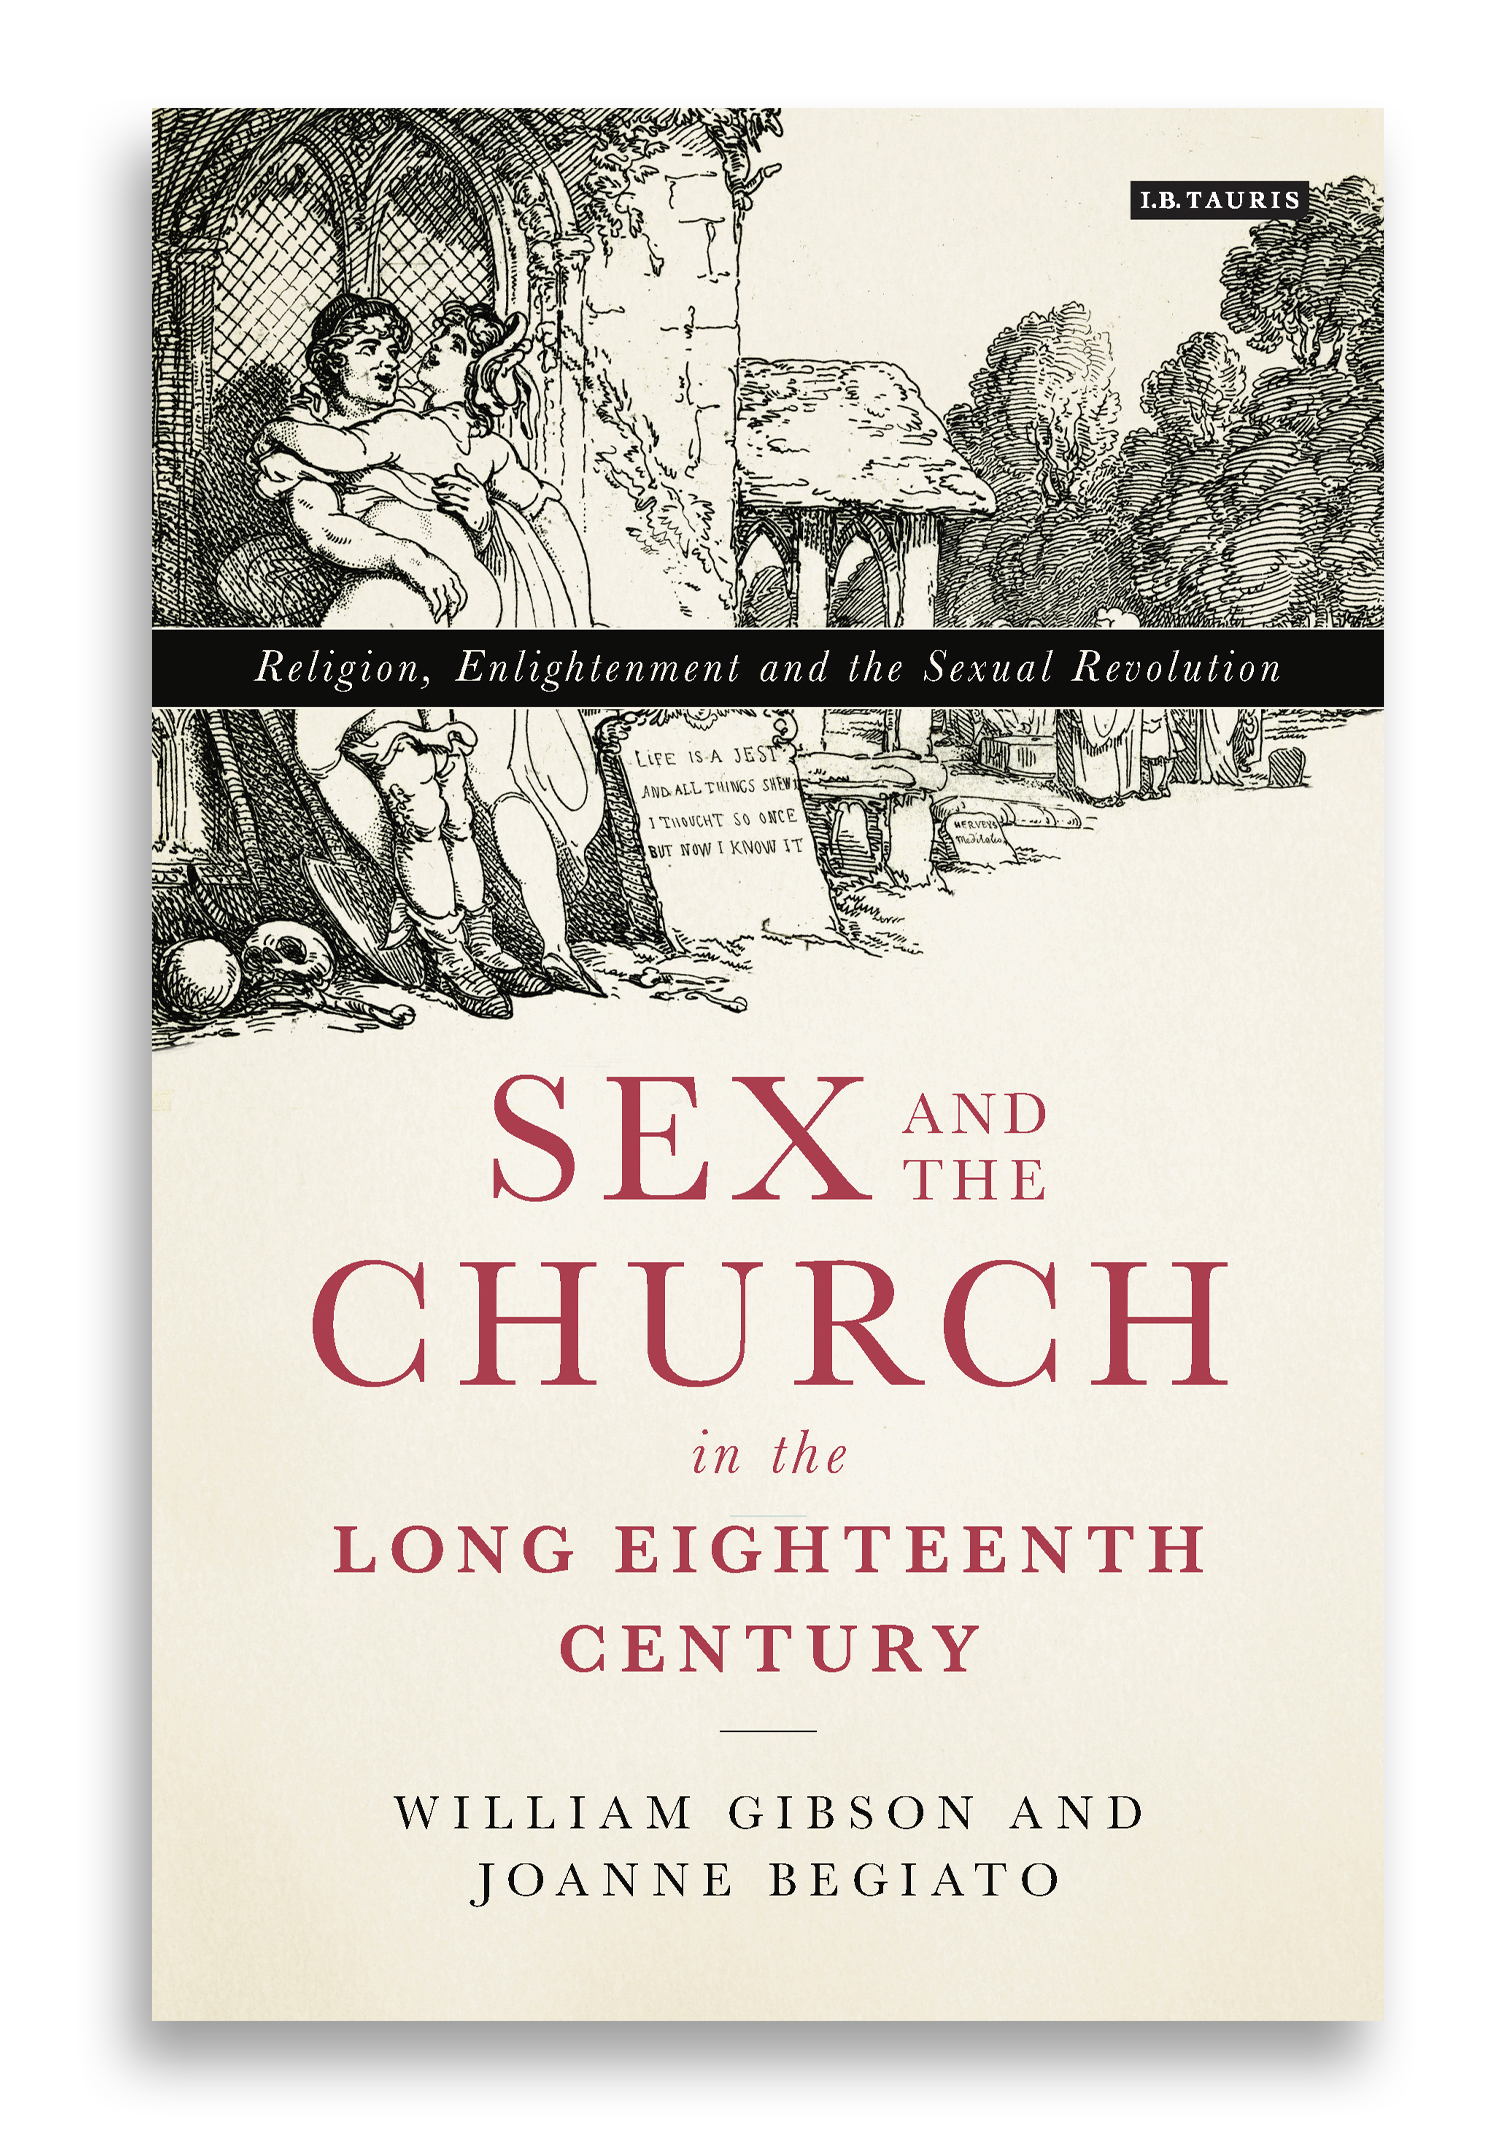 Sex and the Church.jpg